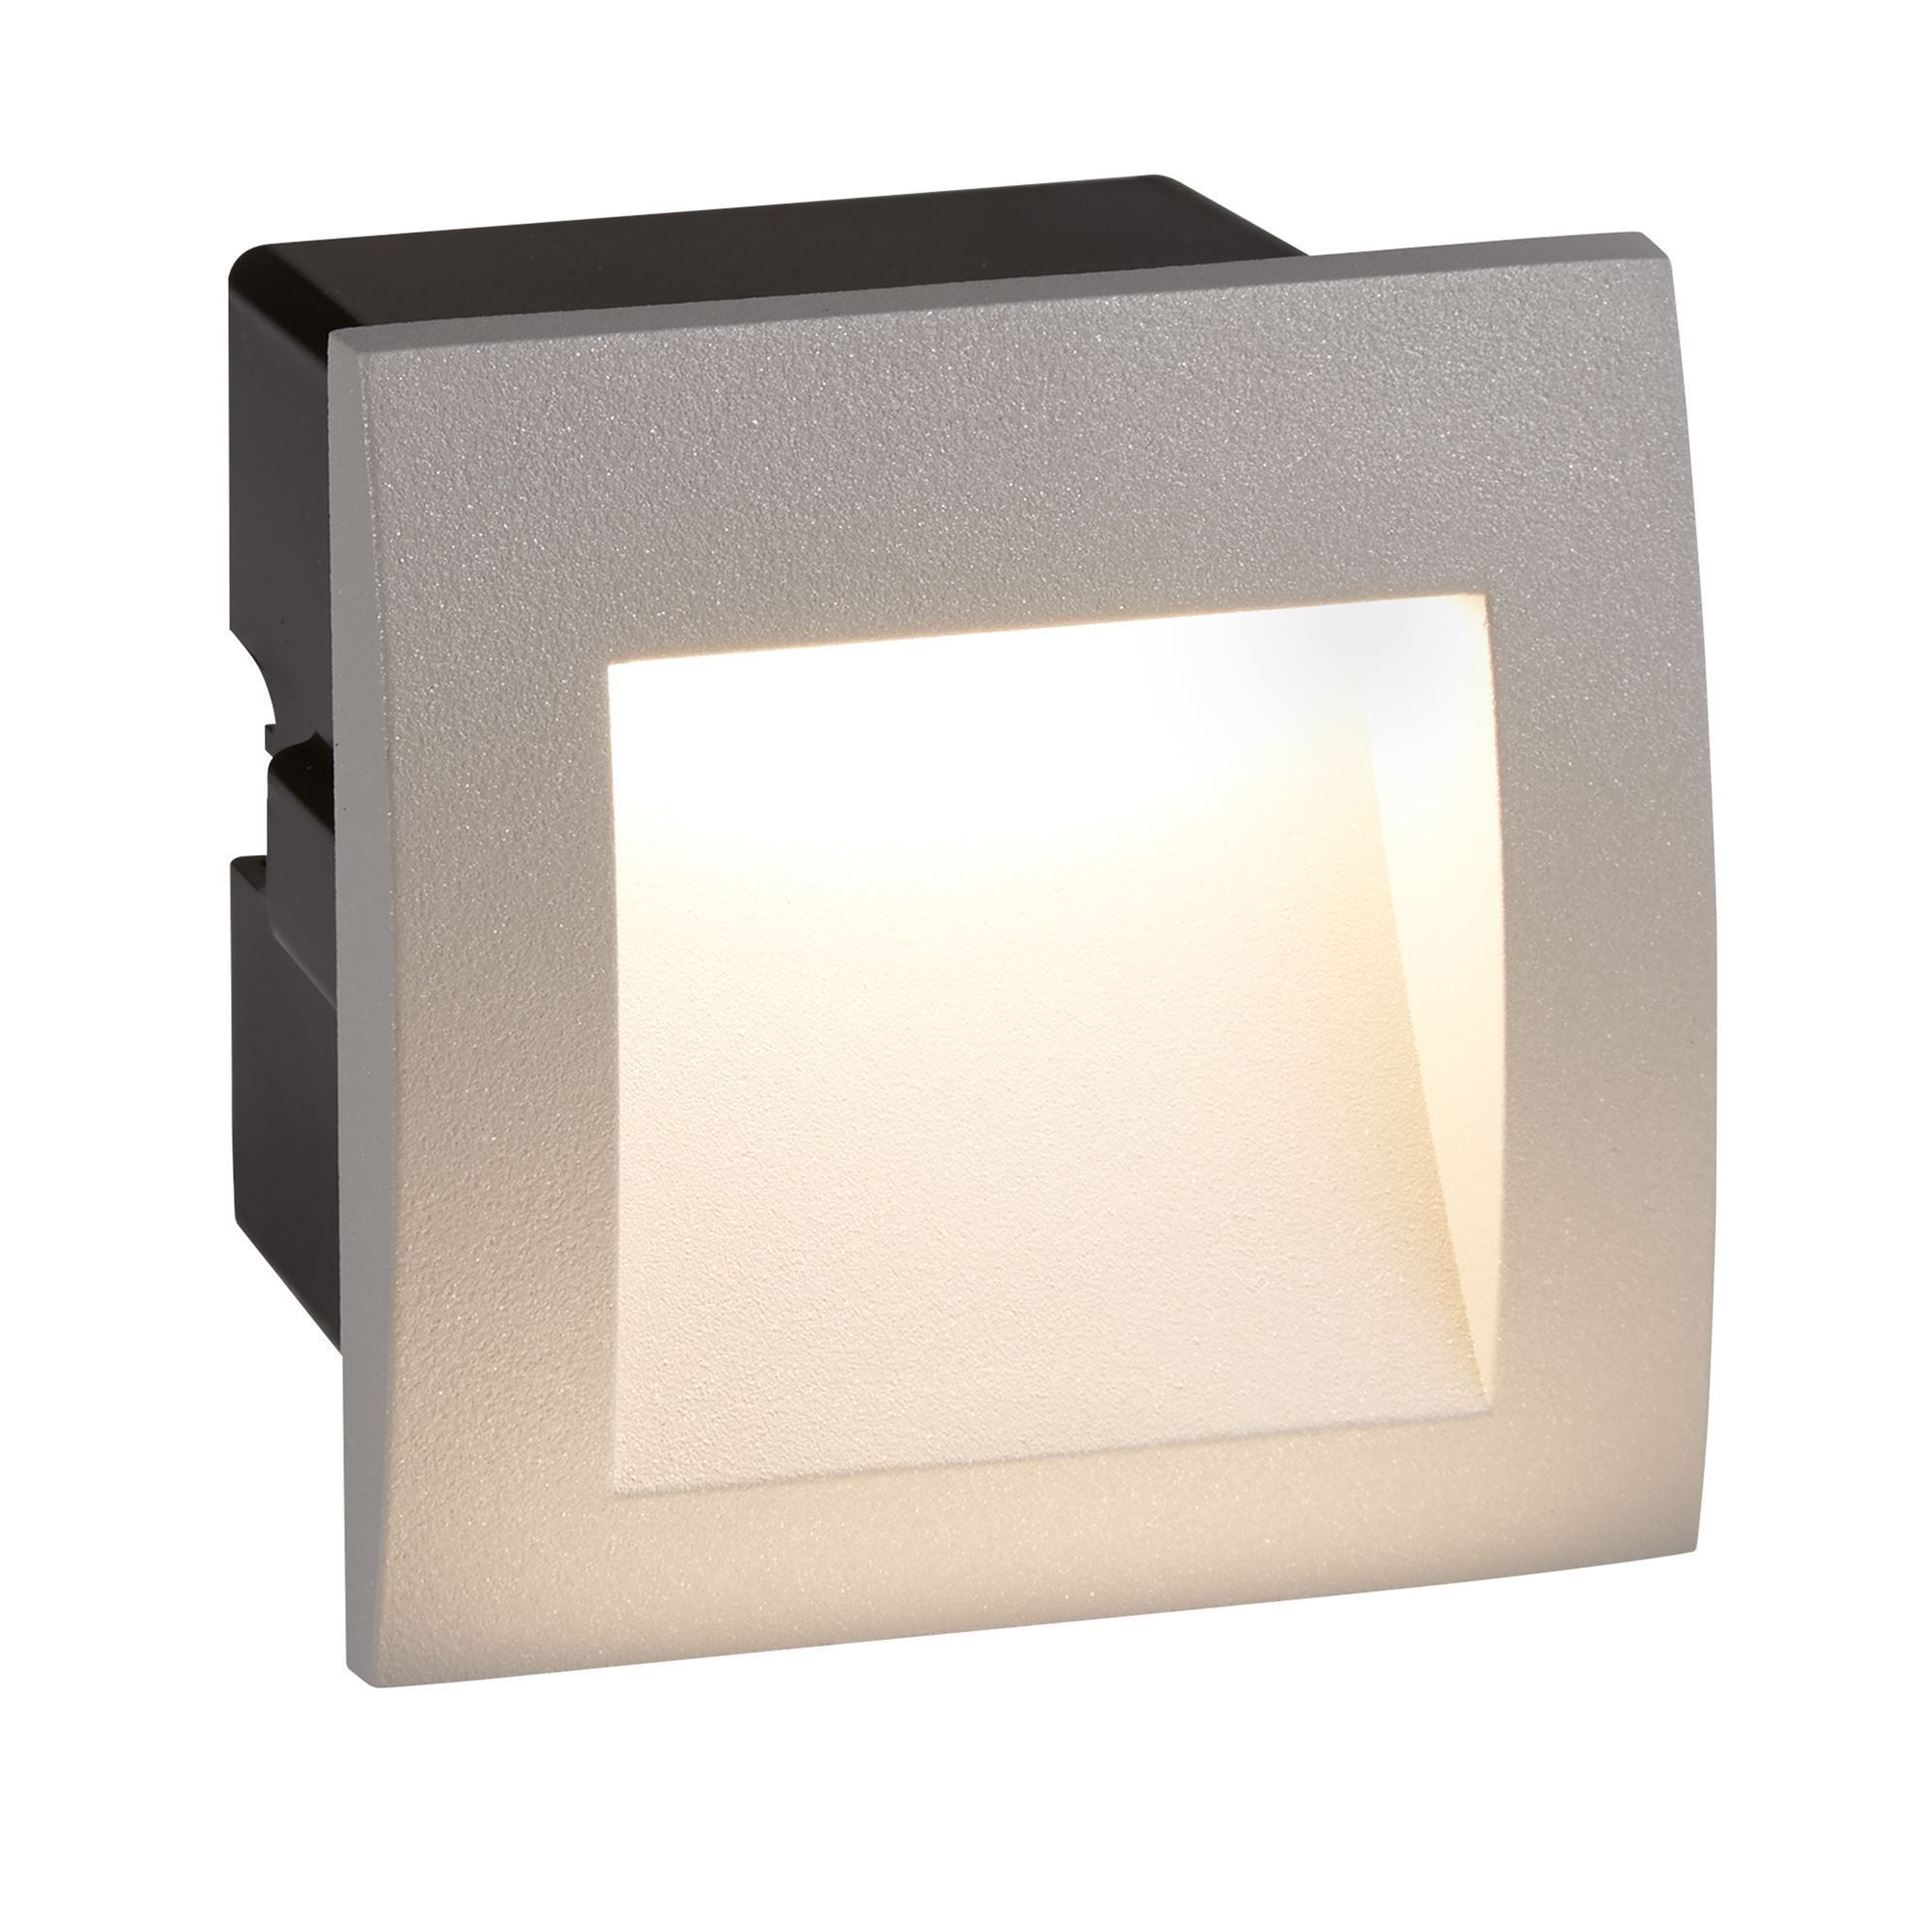 DIE CAST ALUMINIUM LED INDOOR/OUTDOOR RECESSED SQUARE, WB GREY 0661GY